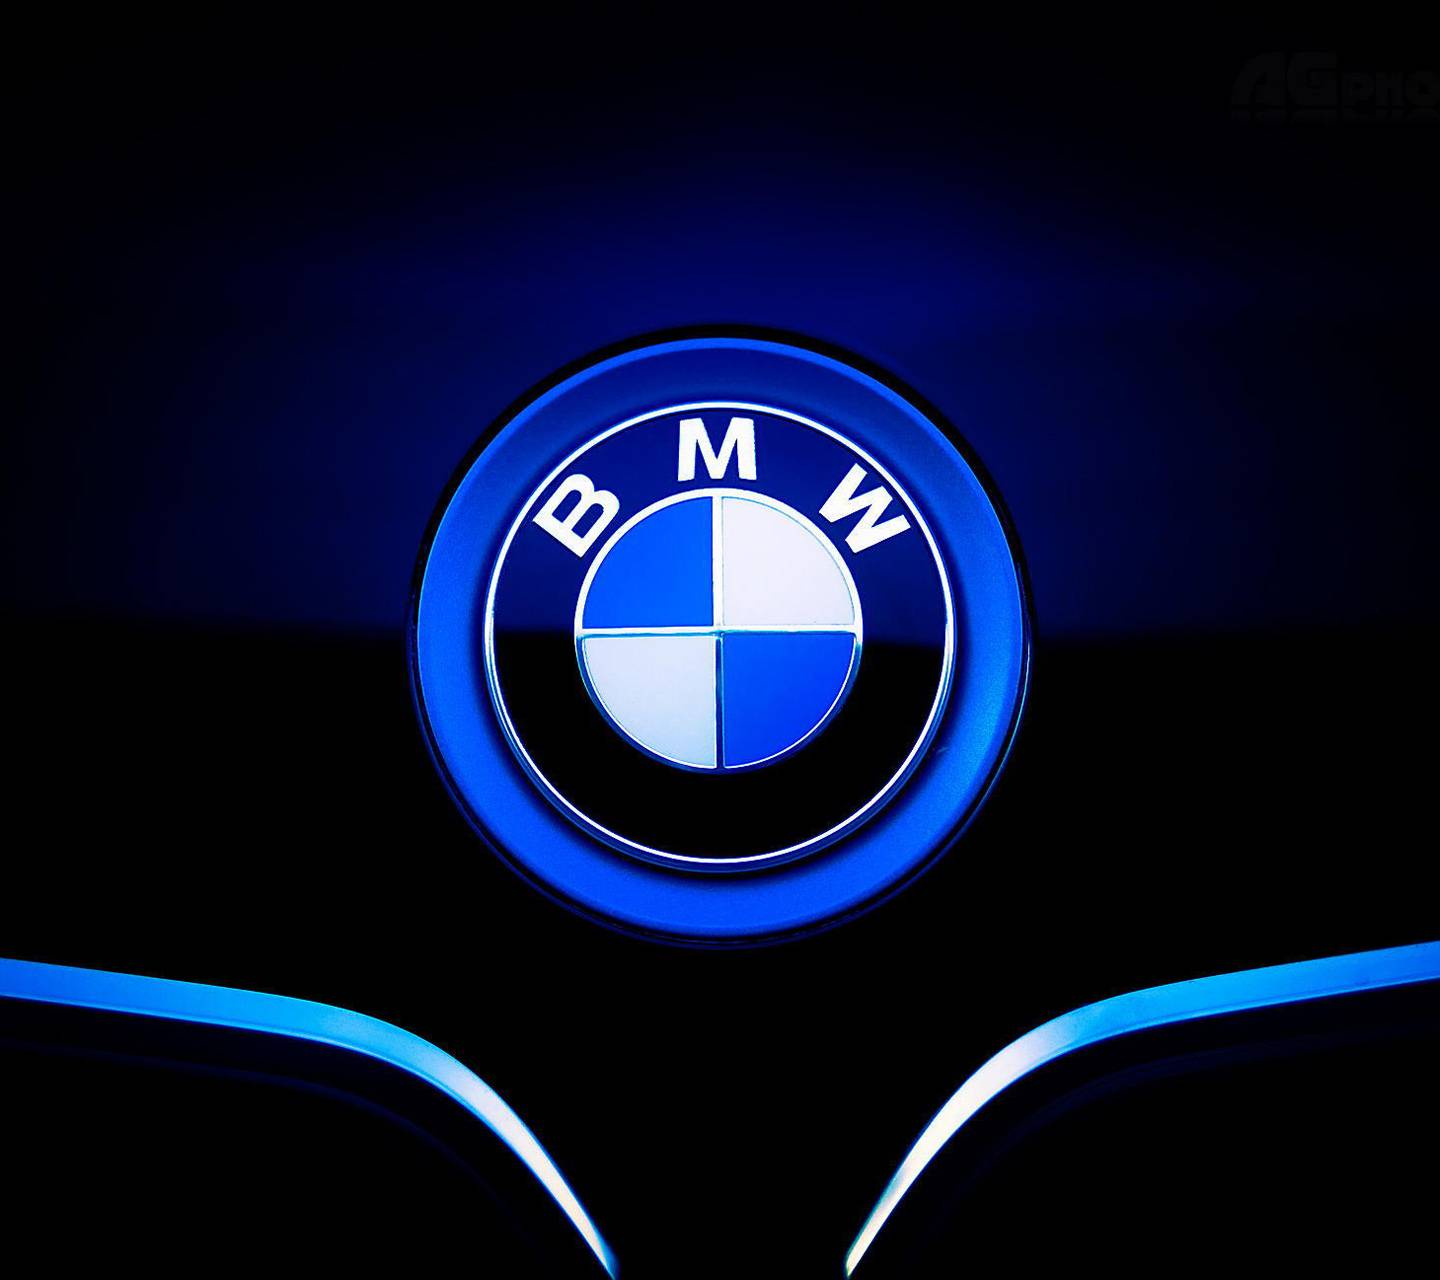 BMW LOGO Wallpaper by medo2018 - 45 - Free on ZEDGE™